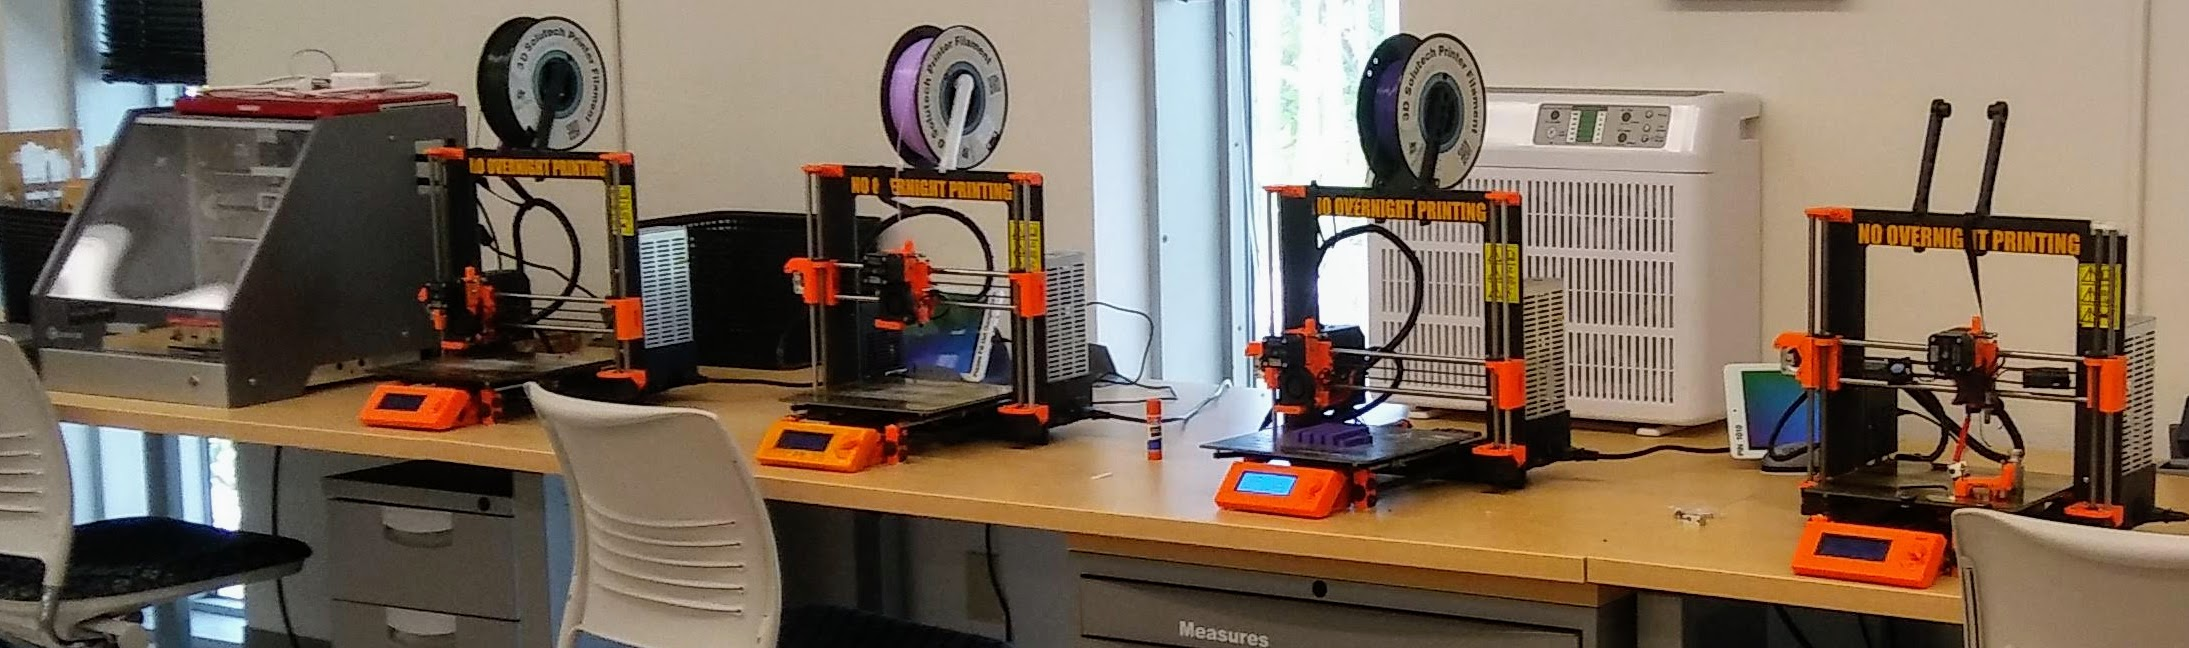 image of 3D printers in Makerspace